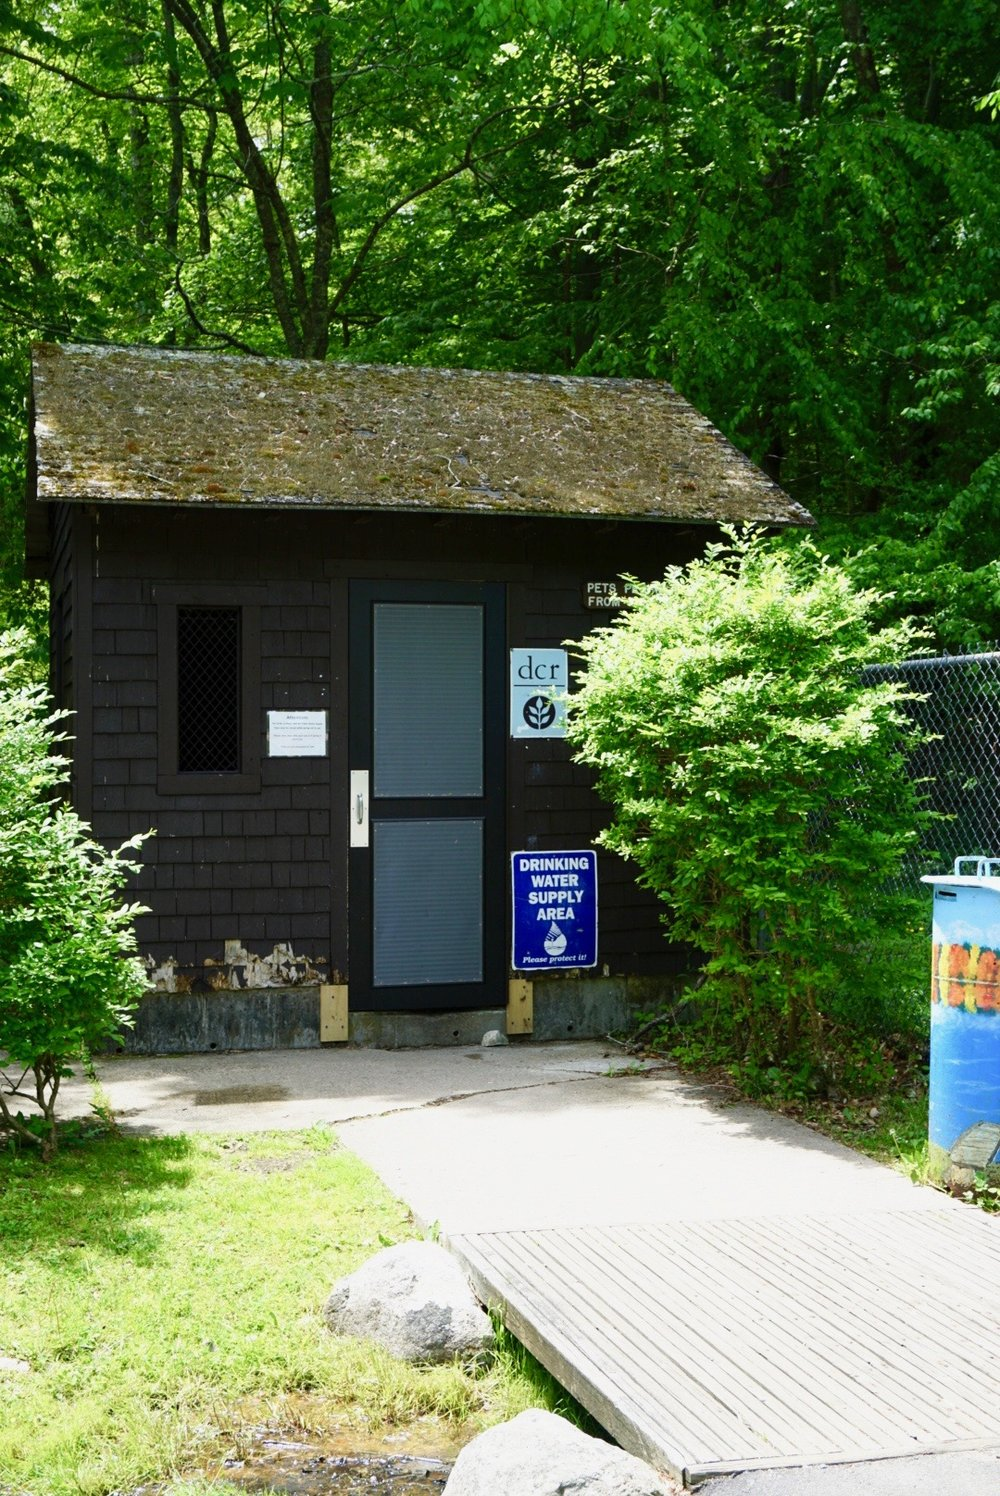 The Mt. Blue Spring aquifers are located in this little hut, near the campgrounds of the Wompatuck State Park.